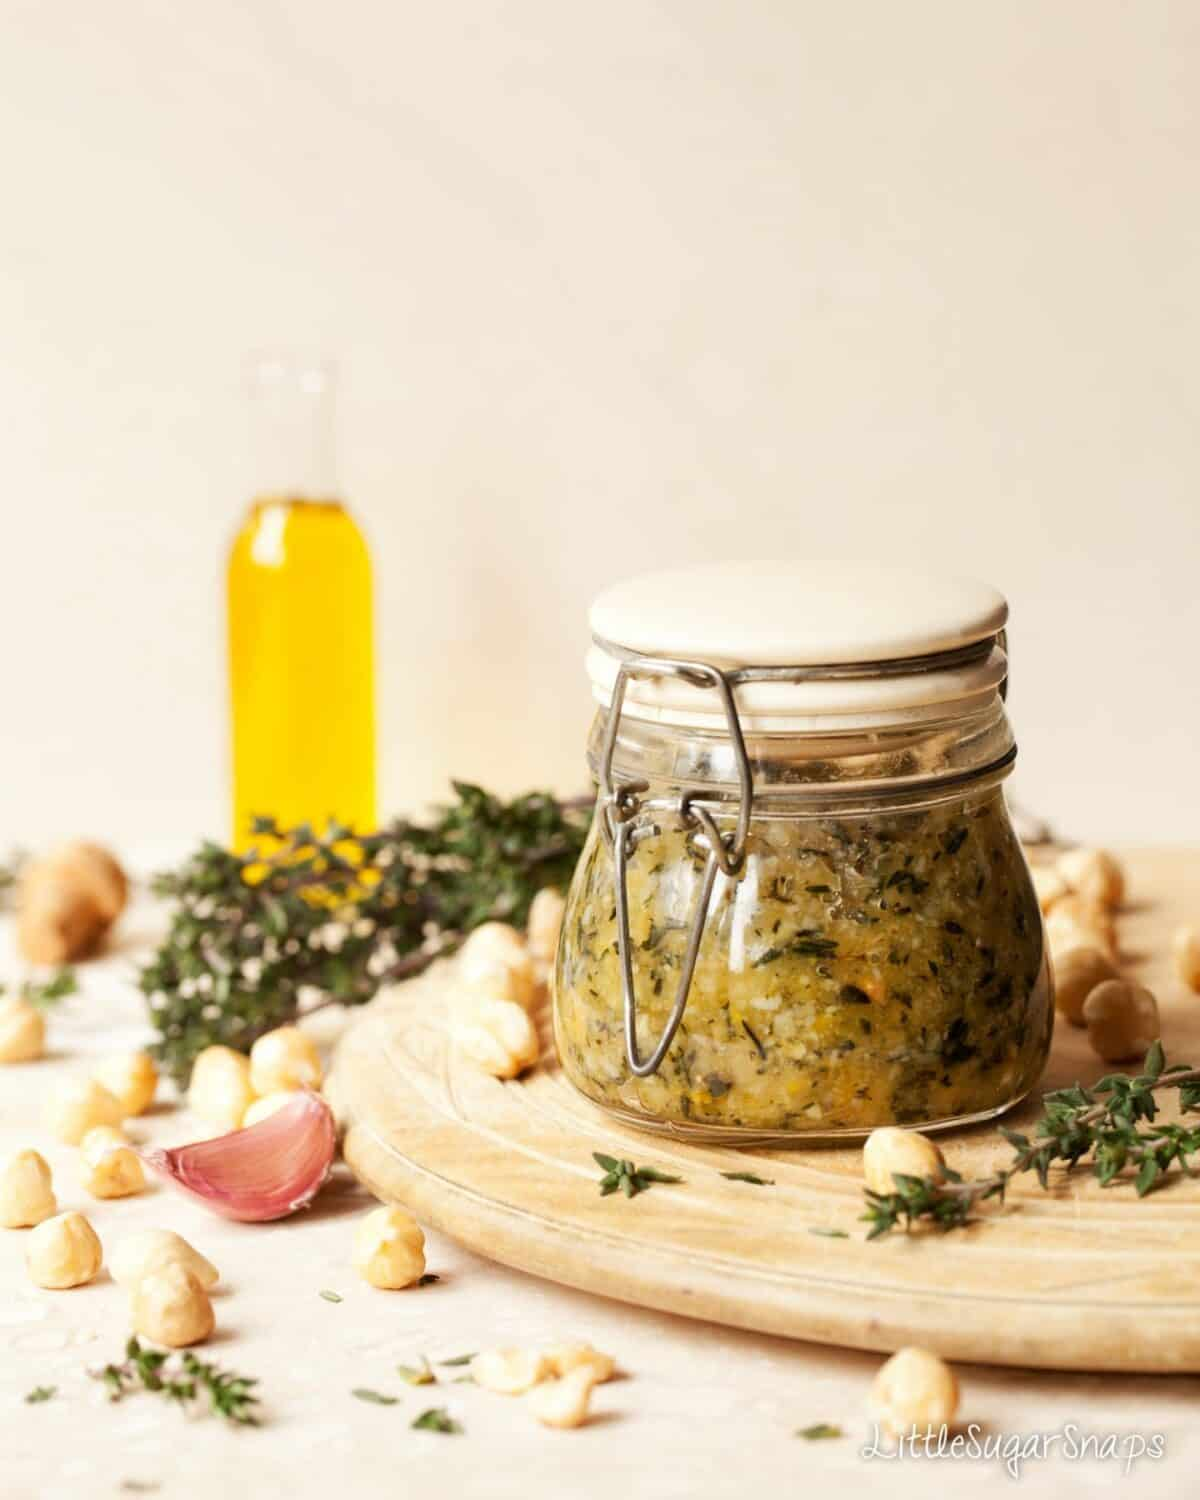 A jar of homemade hazelnut and thyme pesto on a wooden board